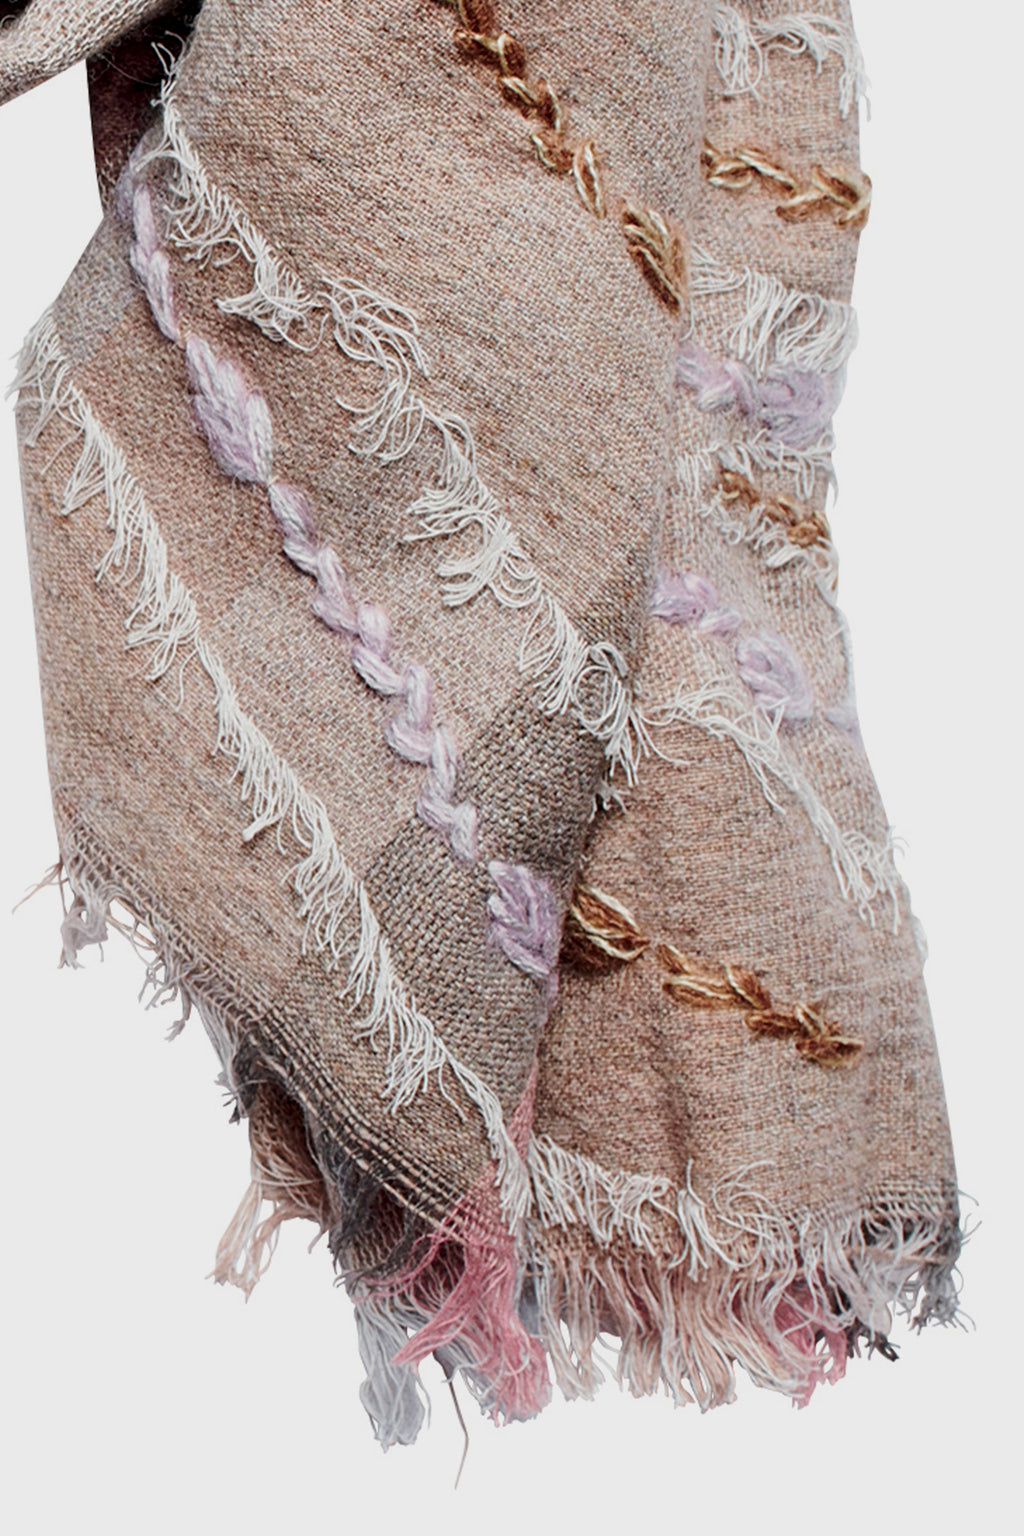 Woven Embroidered Fringe Shawl (BSS3659)-SCARF-BaySky